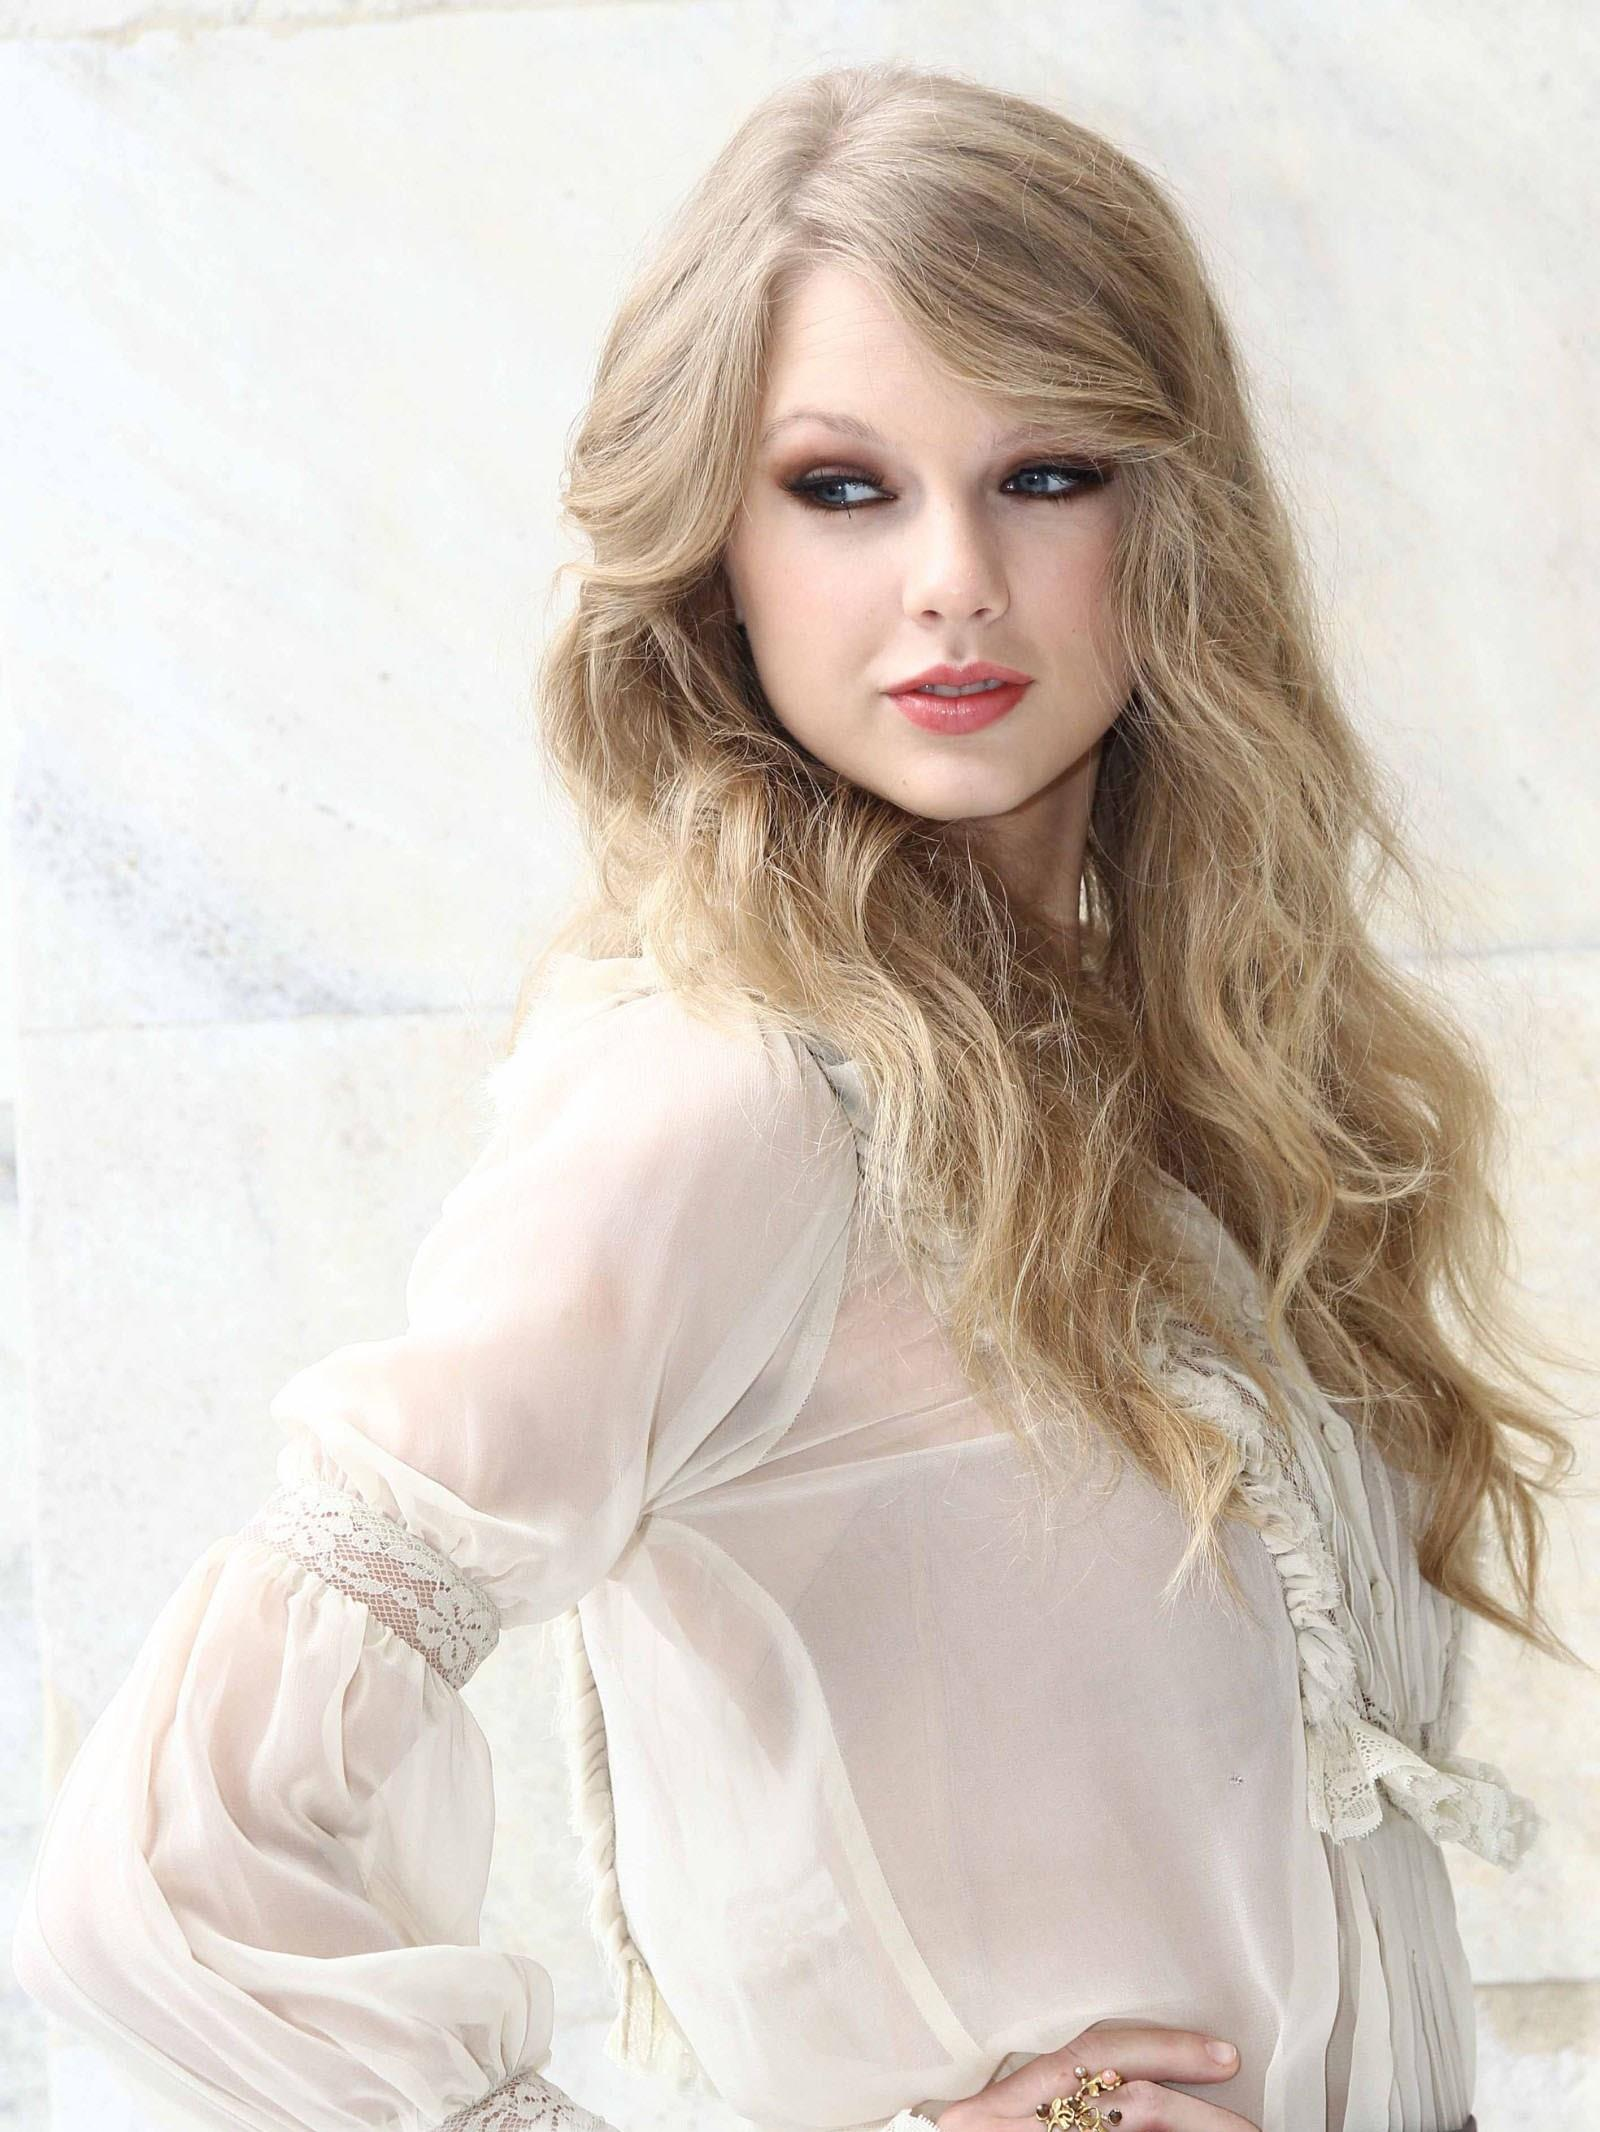 Cute Barbie Images For Wallpaper Taylor Swift Look Like Barbie Doll